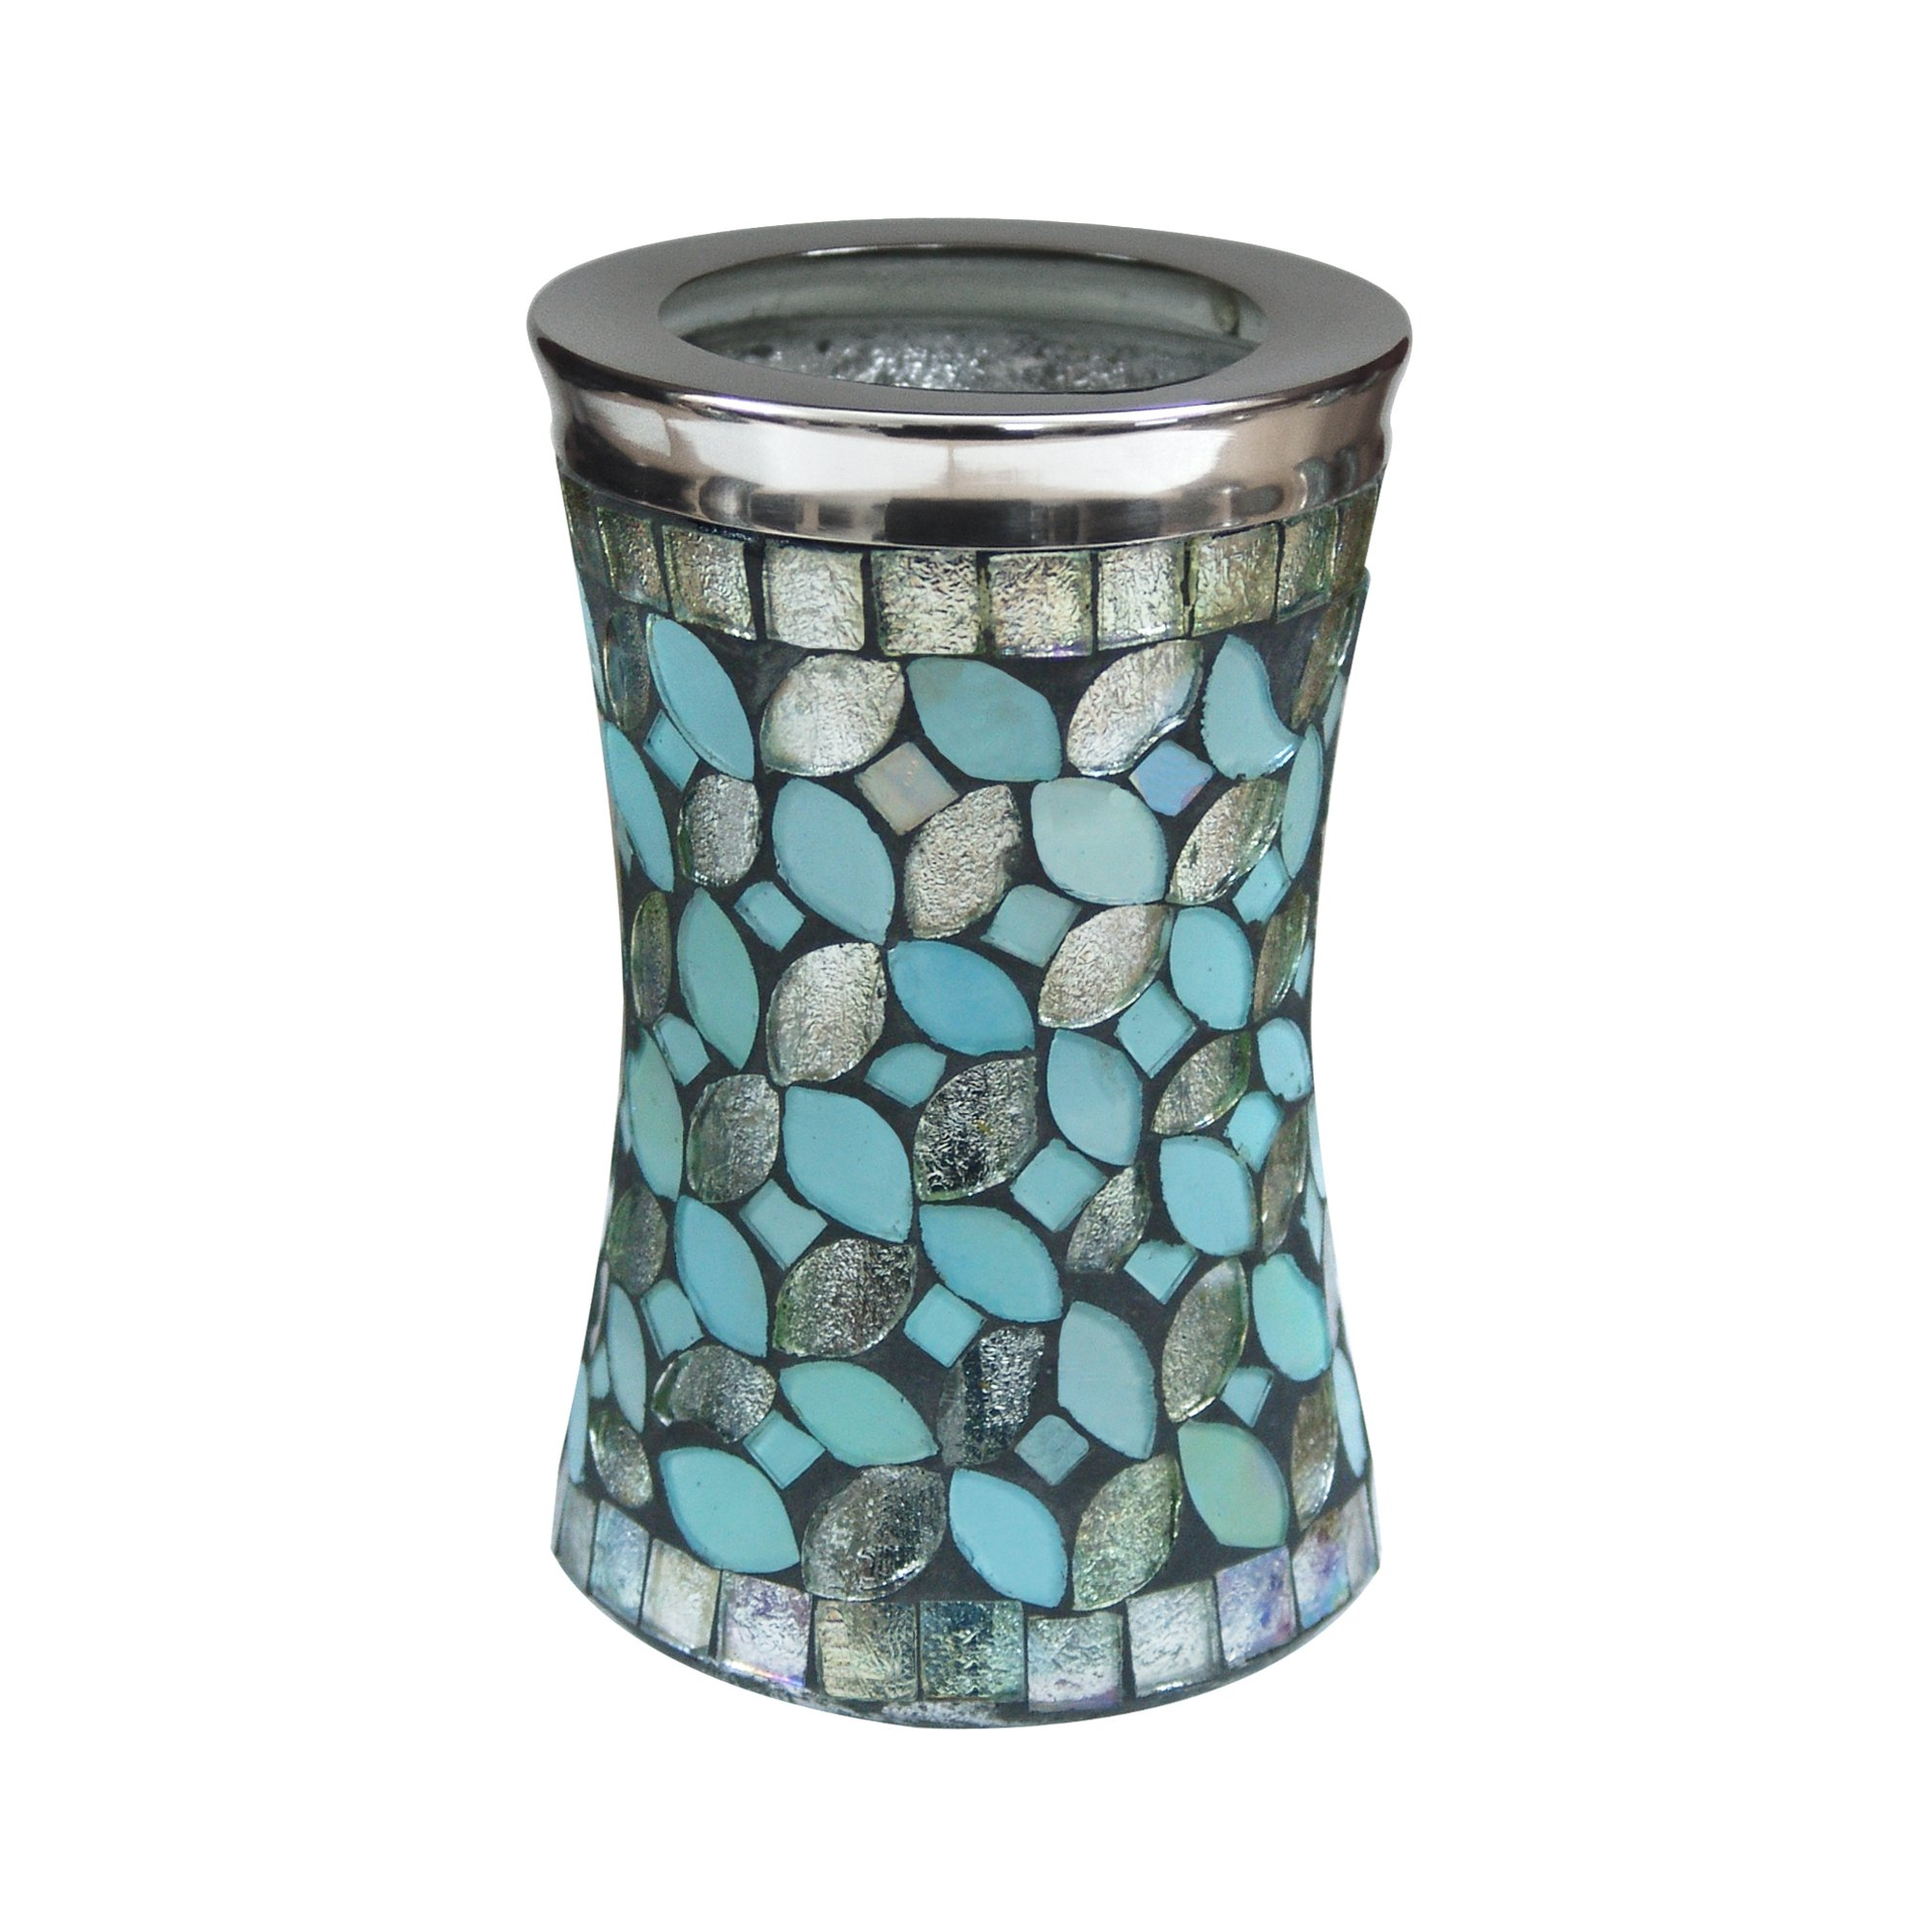 nu steel SF5H Sea Foam Collection Tumbler Cup, Holder for Makeup, Toothbrushes, Brushes On Bathroom, Vanity Countertops, College Dorm, Glass Mosaic with Aqua Finish by nu steel